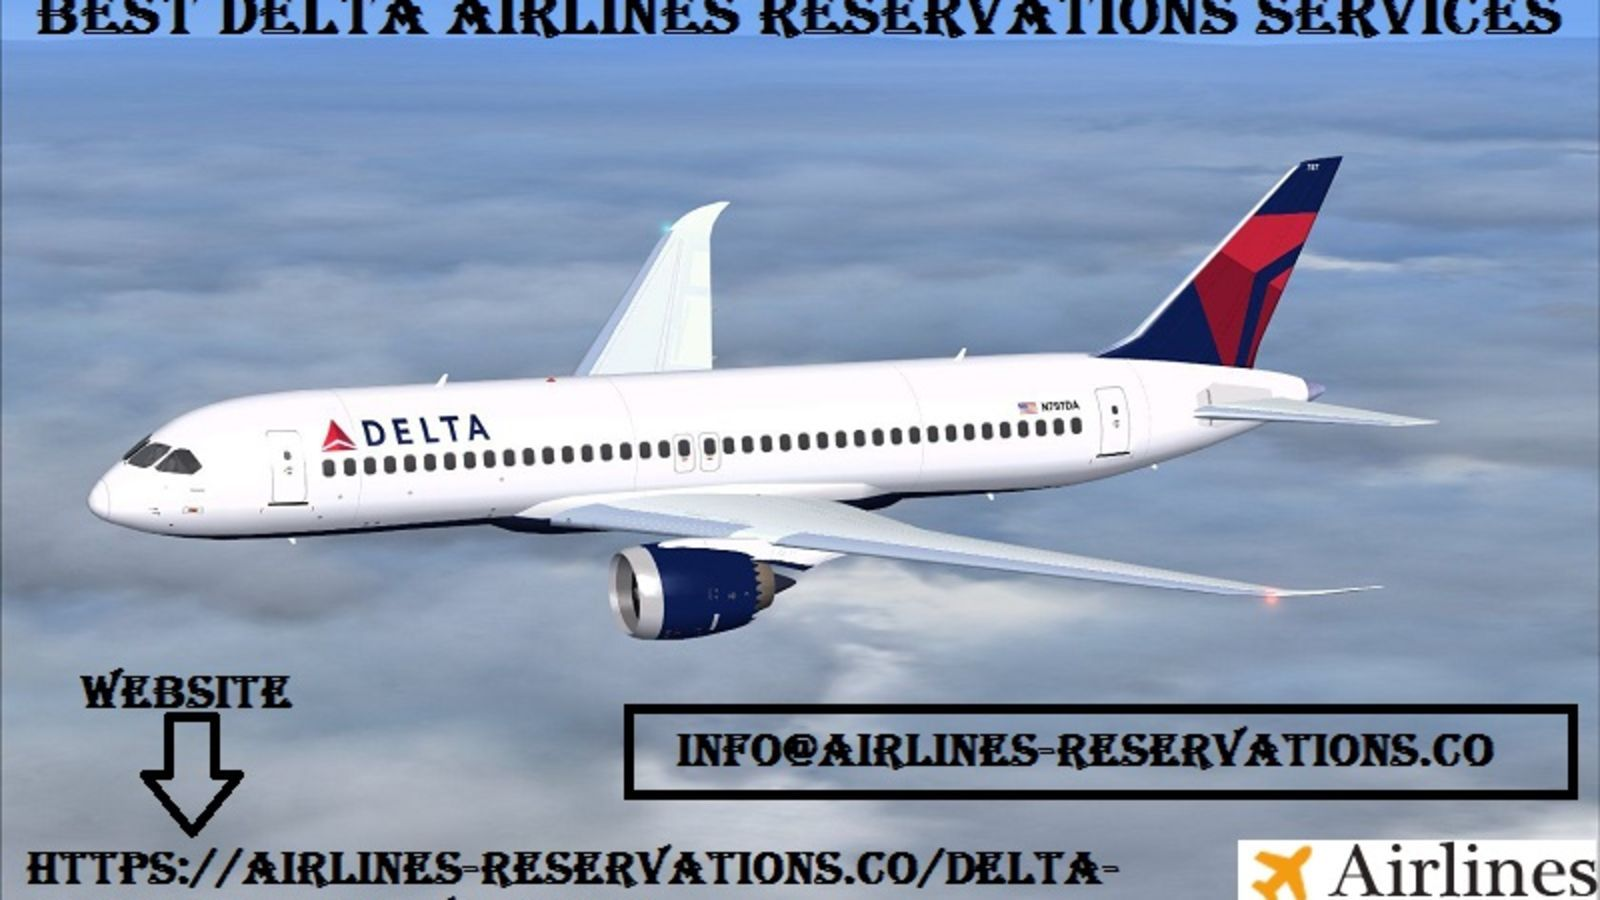 Delta Airlines 6th oldest operating airline by